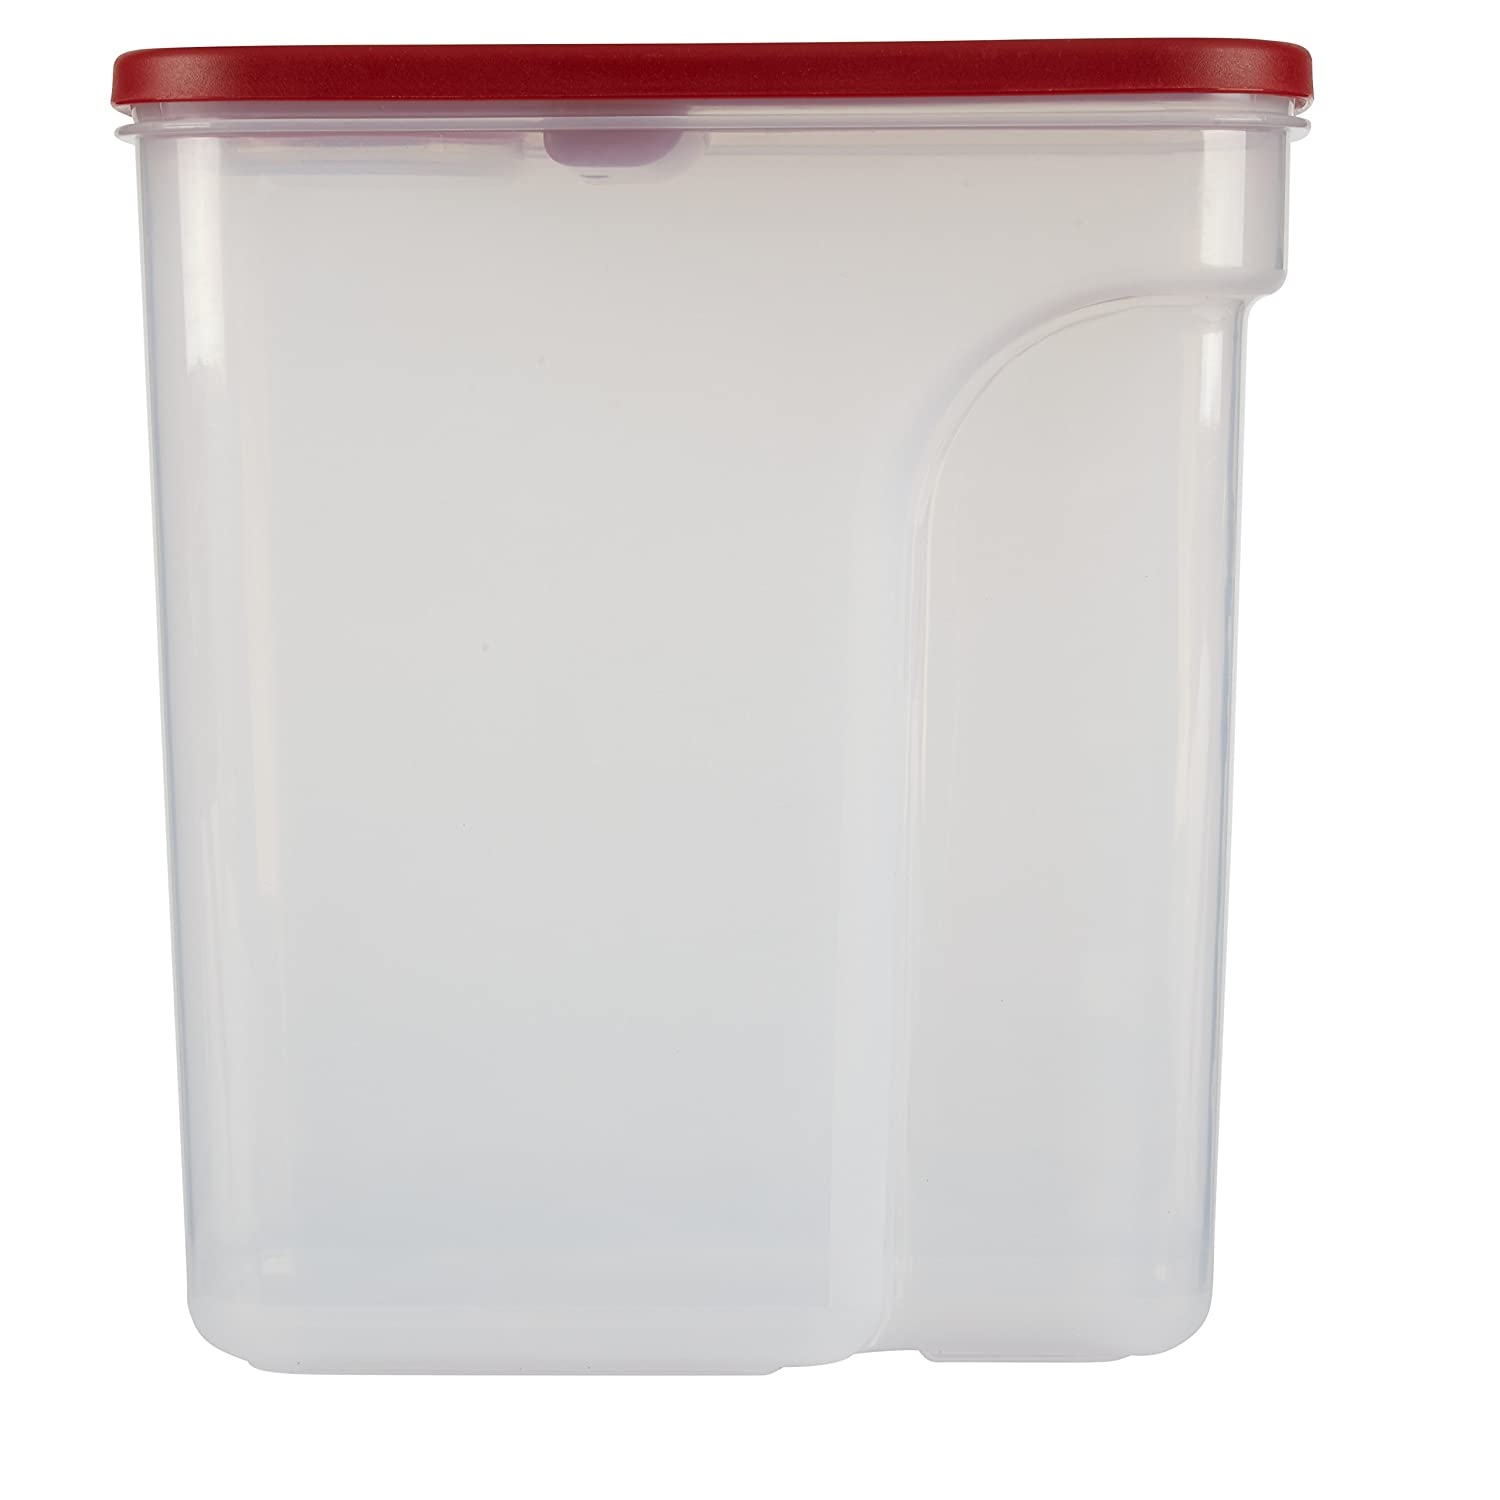 Rubbermaid Flip Top Cereal Keeper, Modular Food Storage